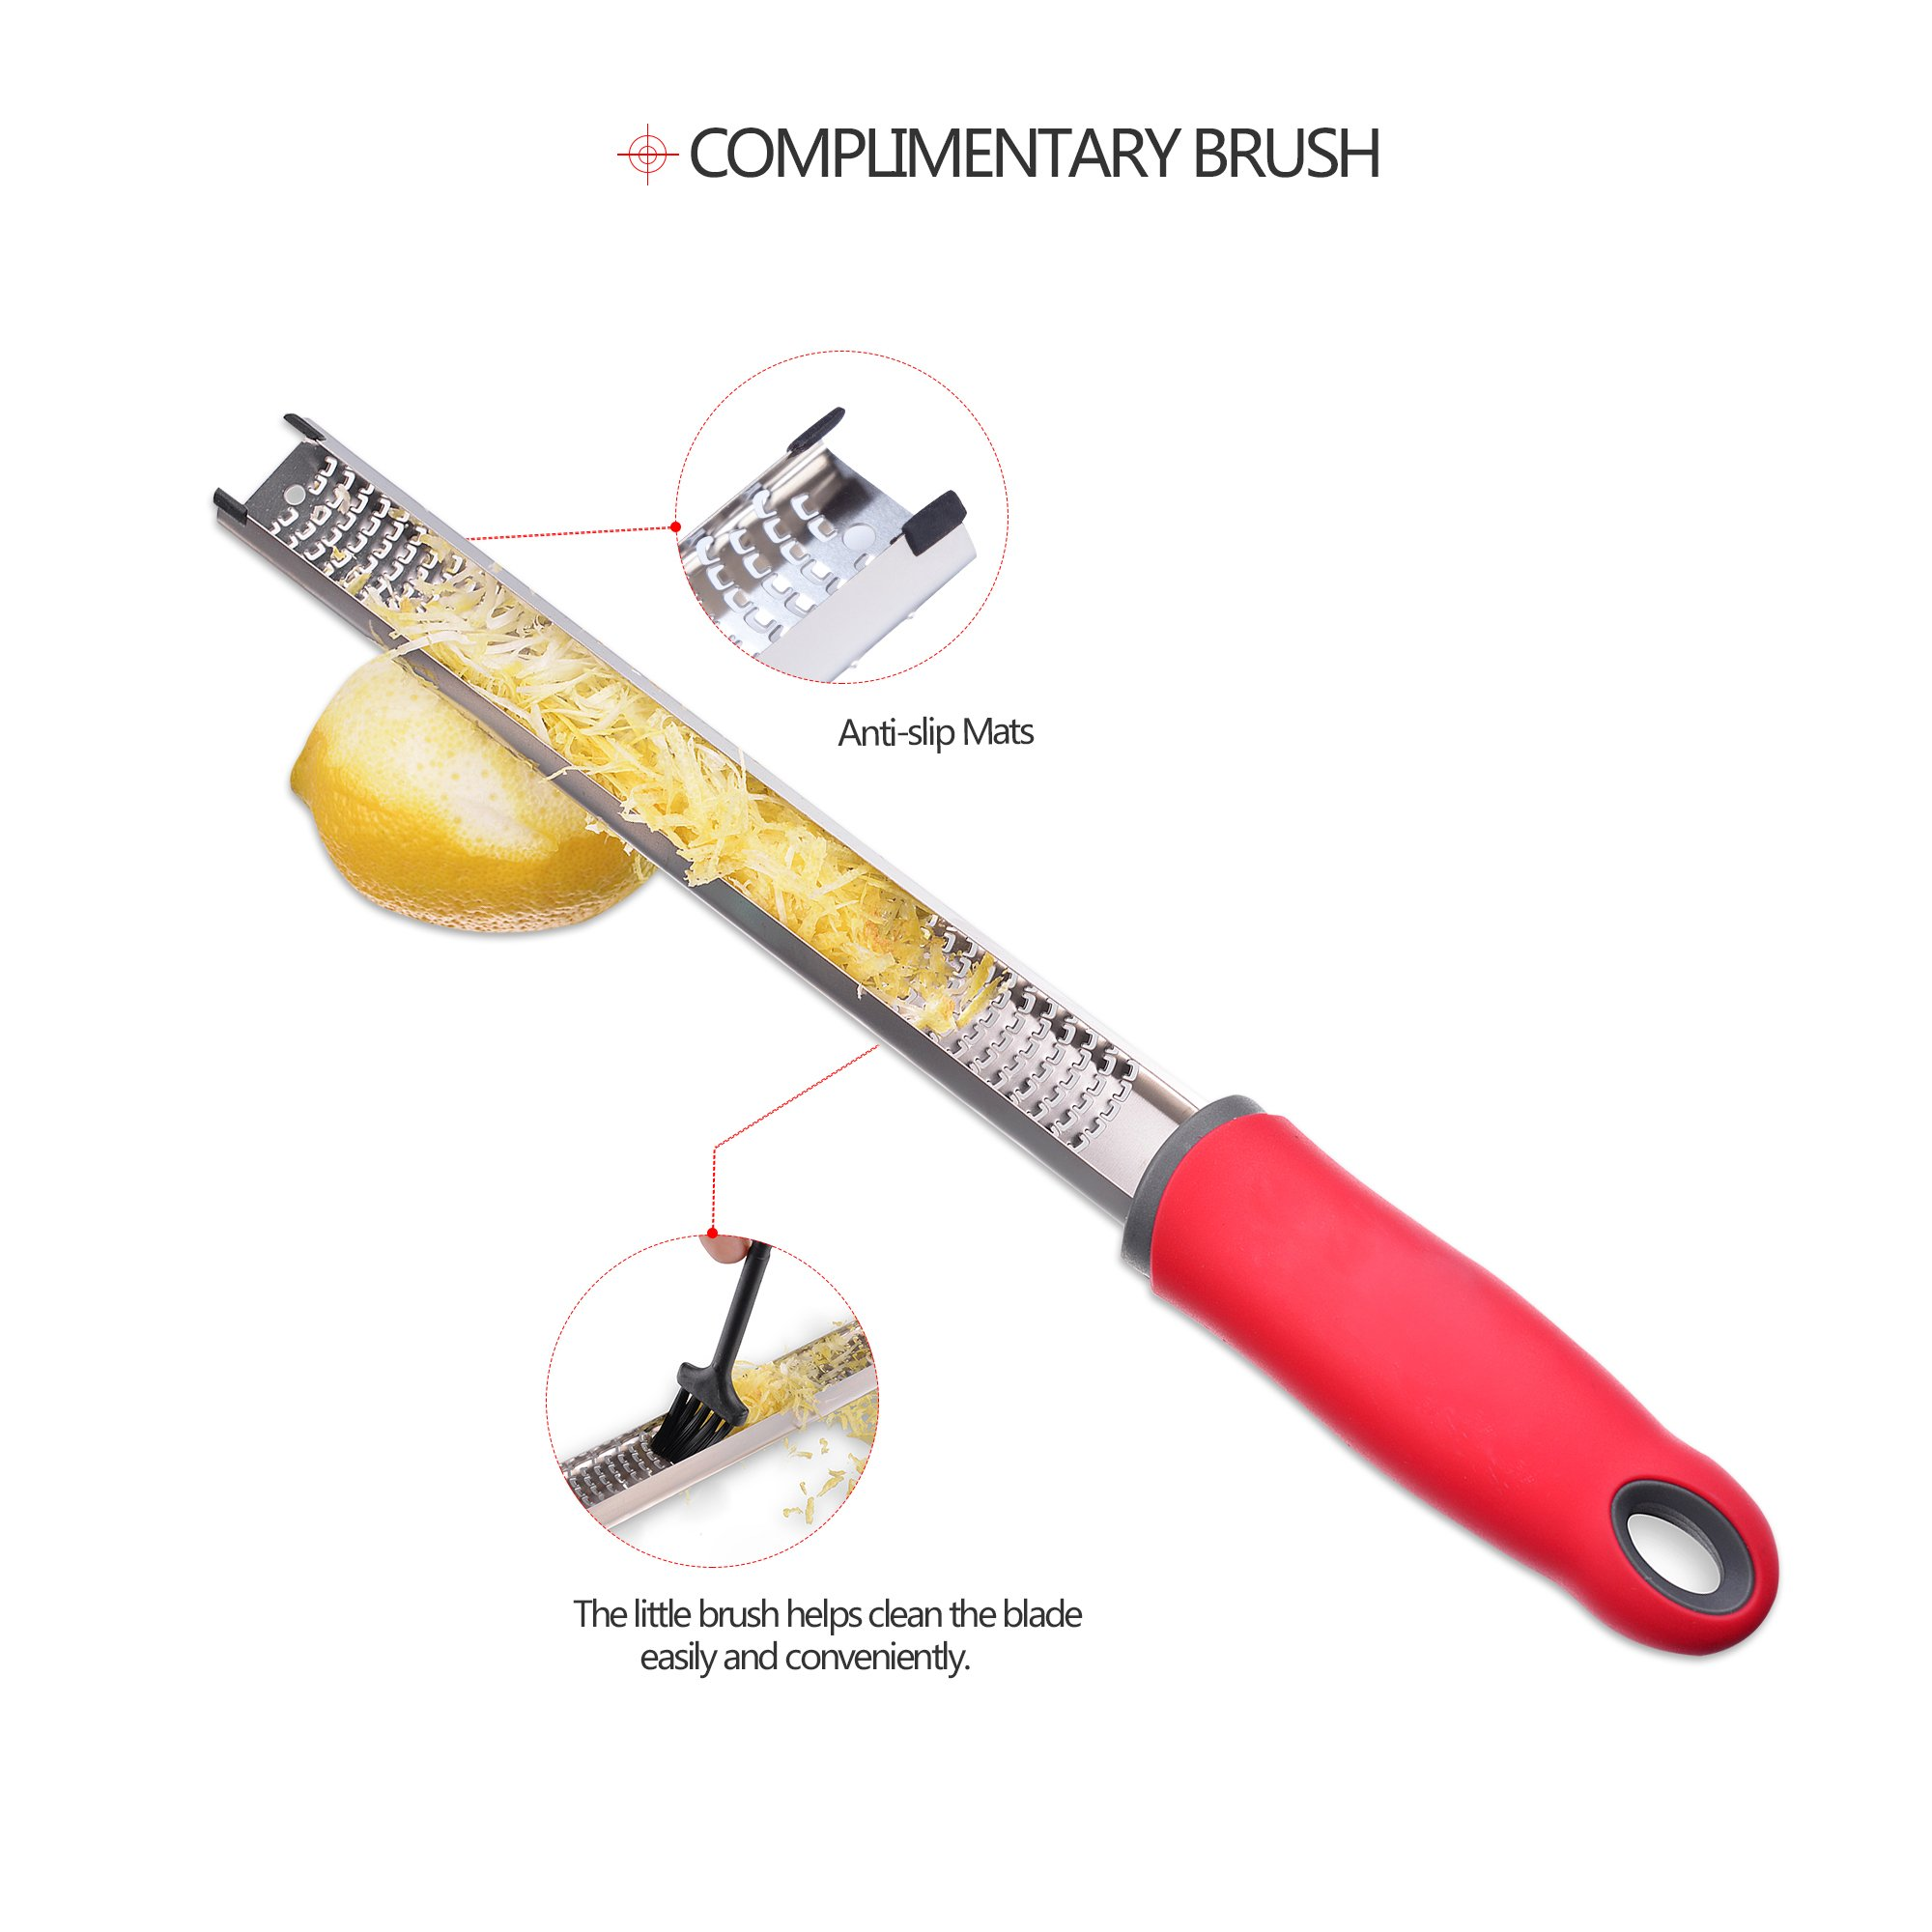 steel on kitchen vegetables home grater plane graters knife garden fruits item flat com from in multifunctional cutter aliexpress tools holes stainless